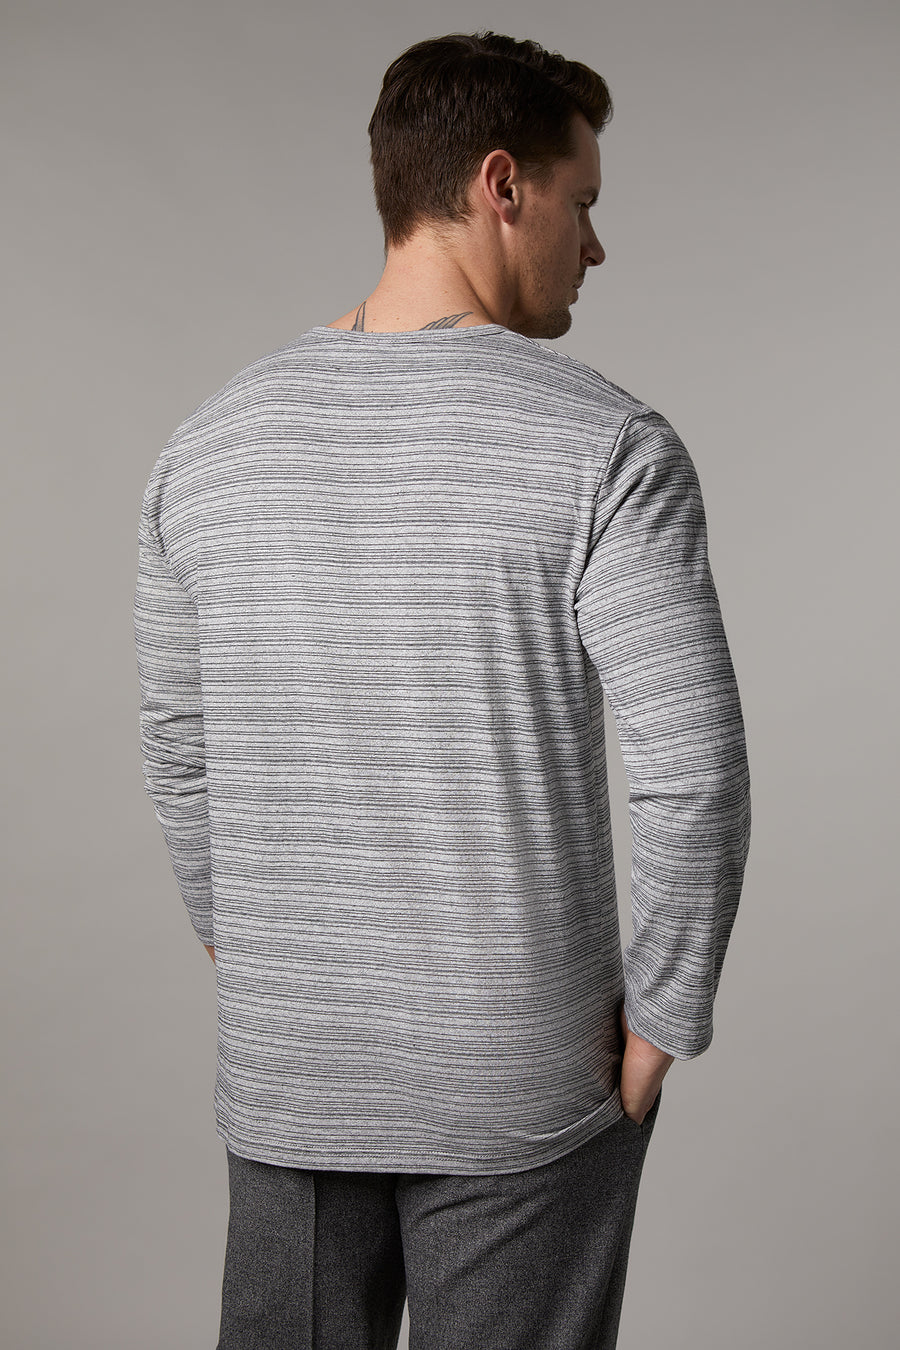 Patrick Light Grey Long Sleeve T-Shirt